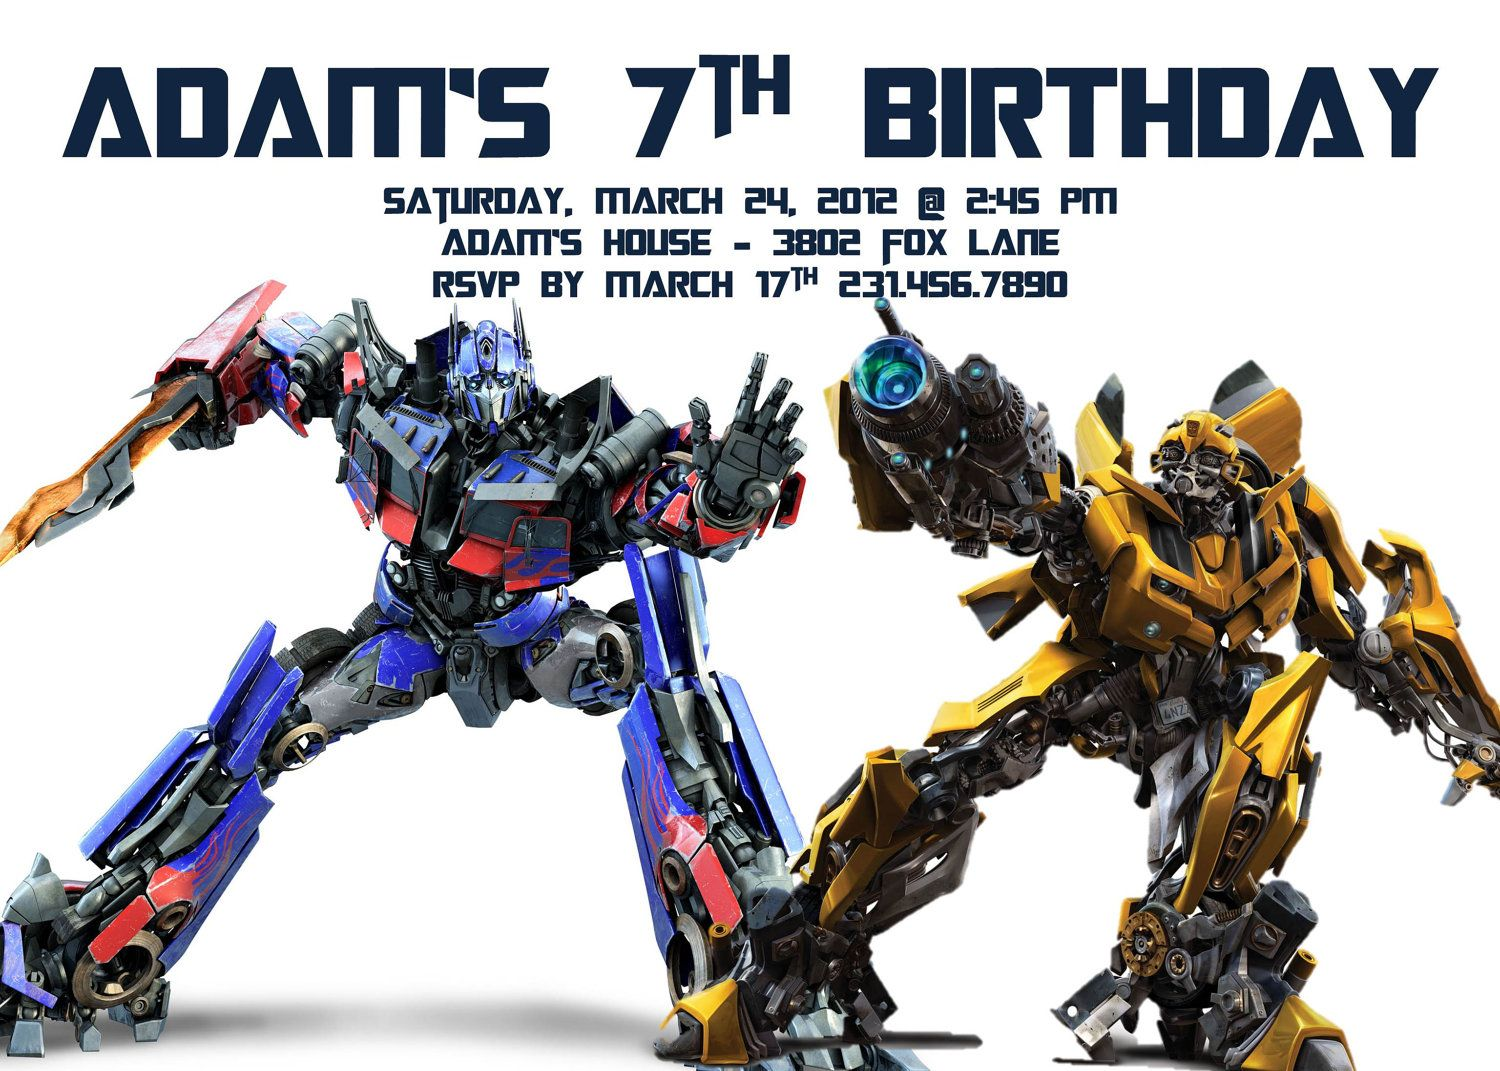 Transformers Birthday Invitation Template – Free Printable Transformers Birthday Invitations